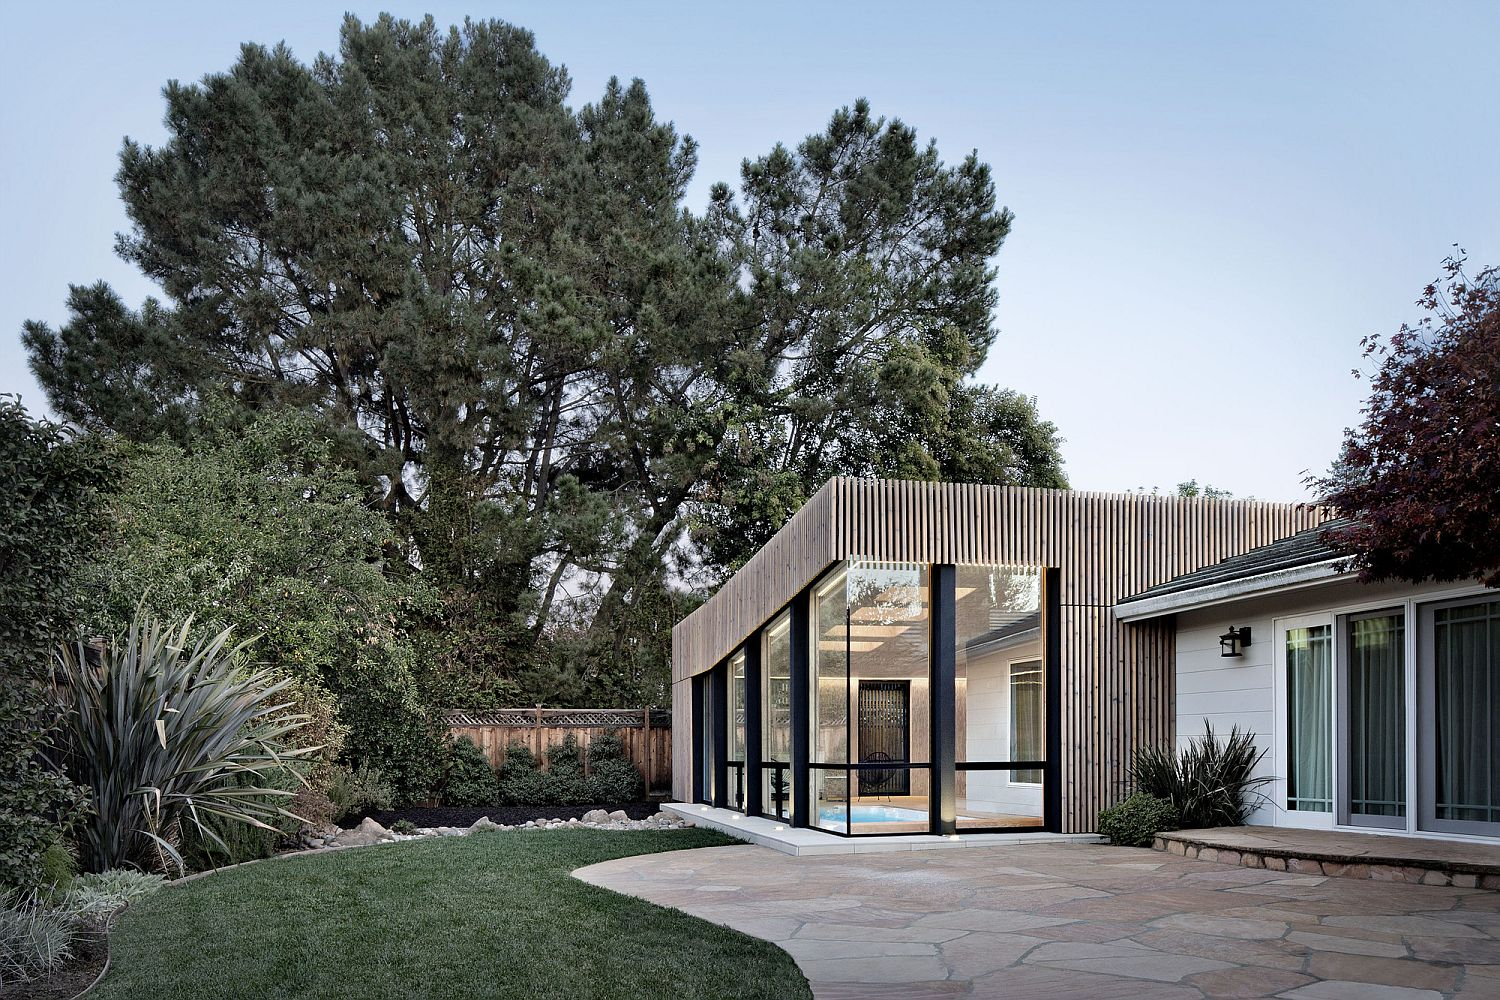 Contemporary Los Altos cabin sits snugly nest to the older home with different aesthetics